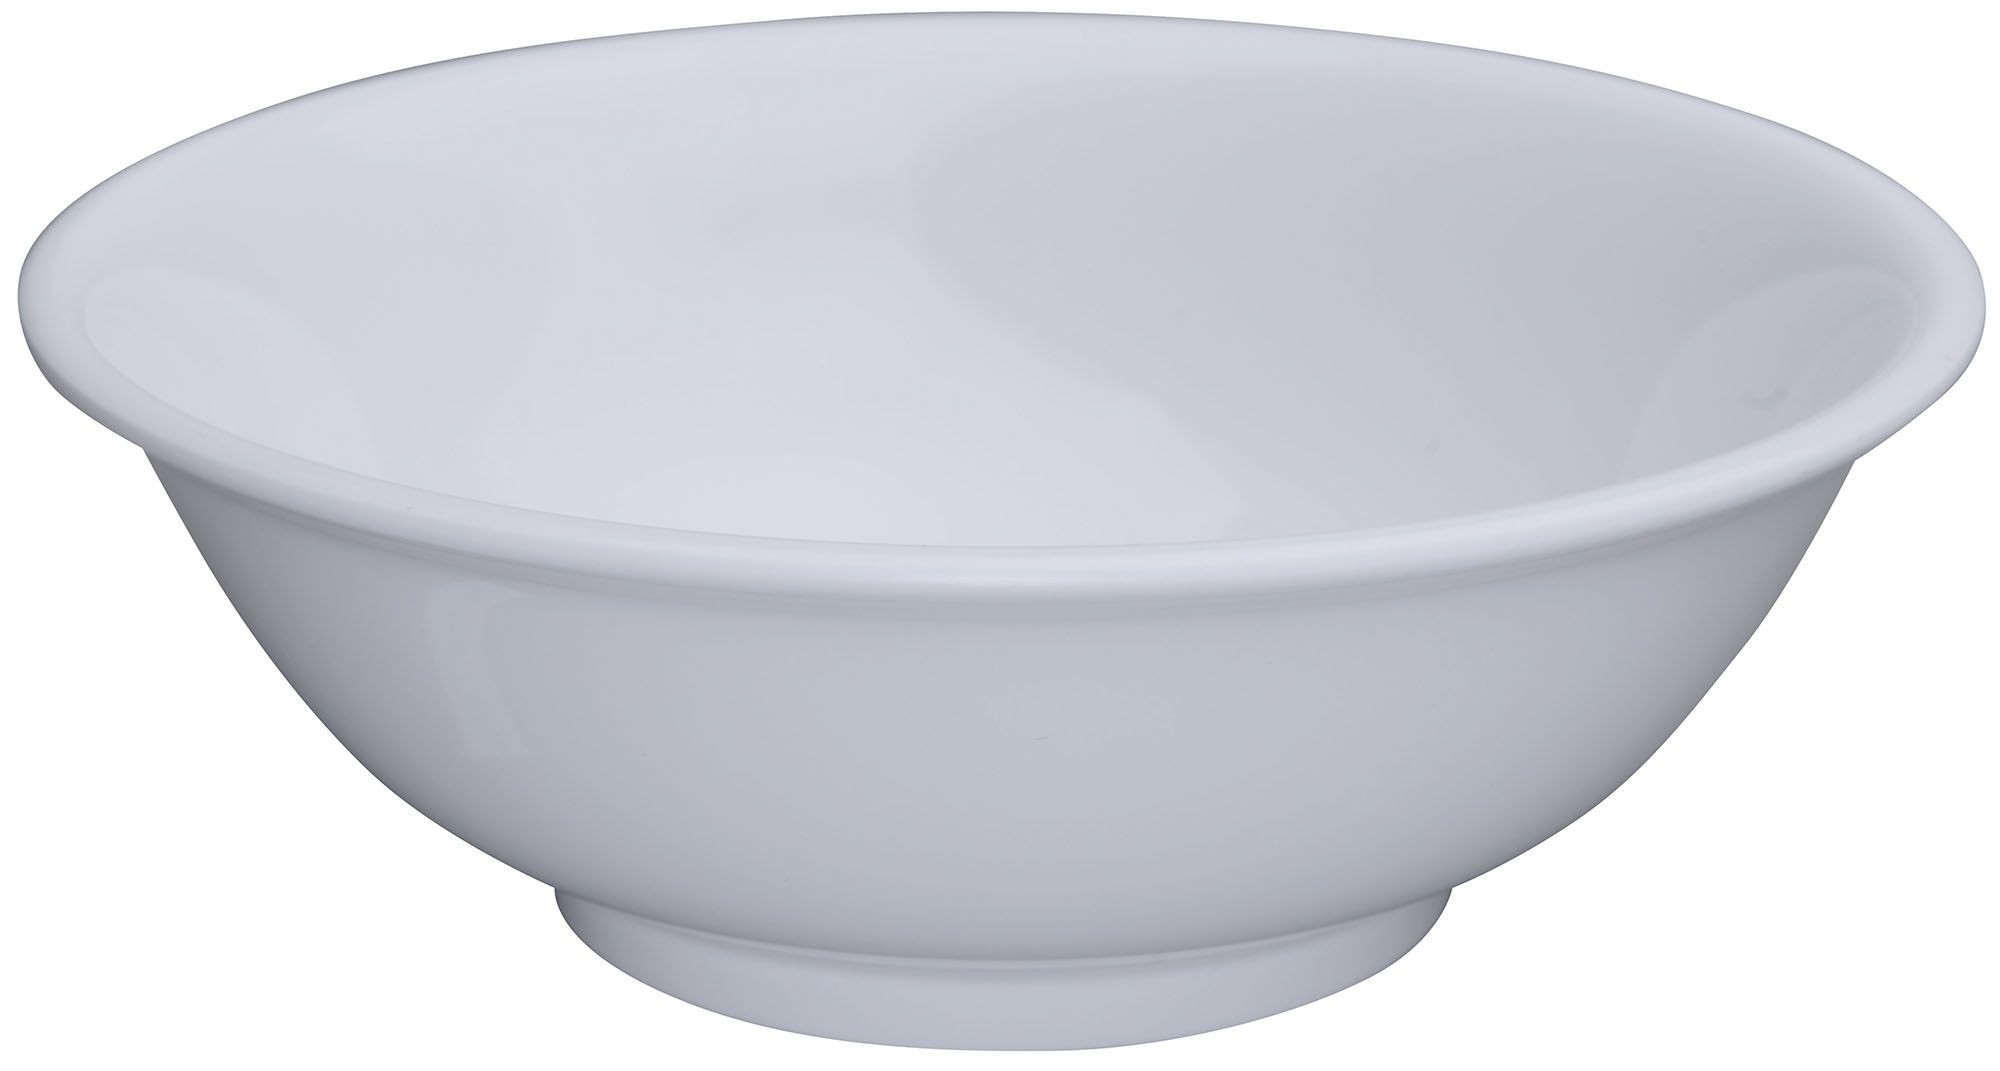 Winco MMB-41W 41 oz. Melamine Rimless Bowl White